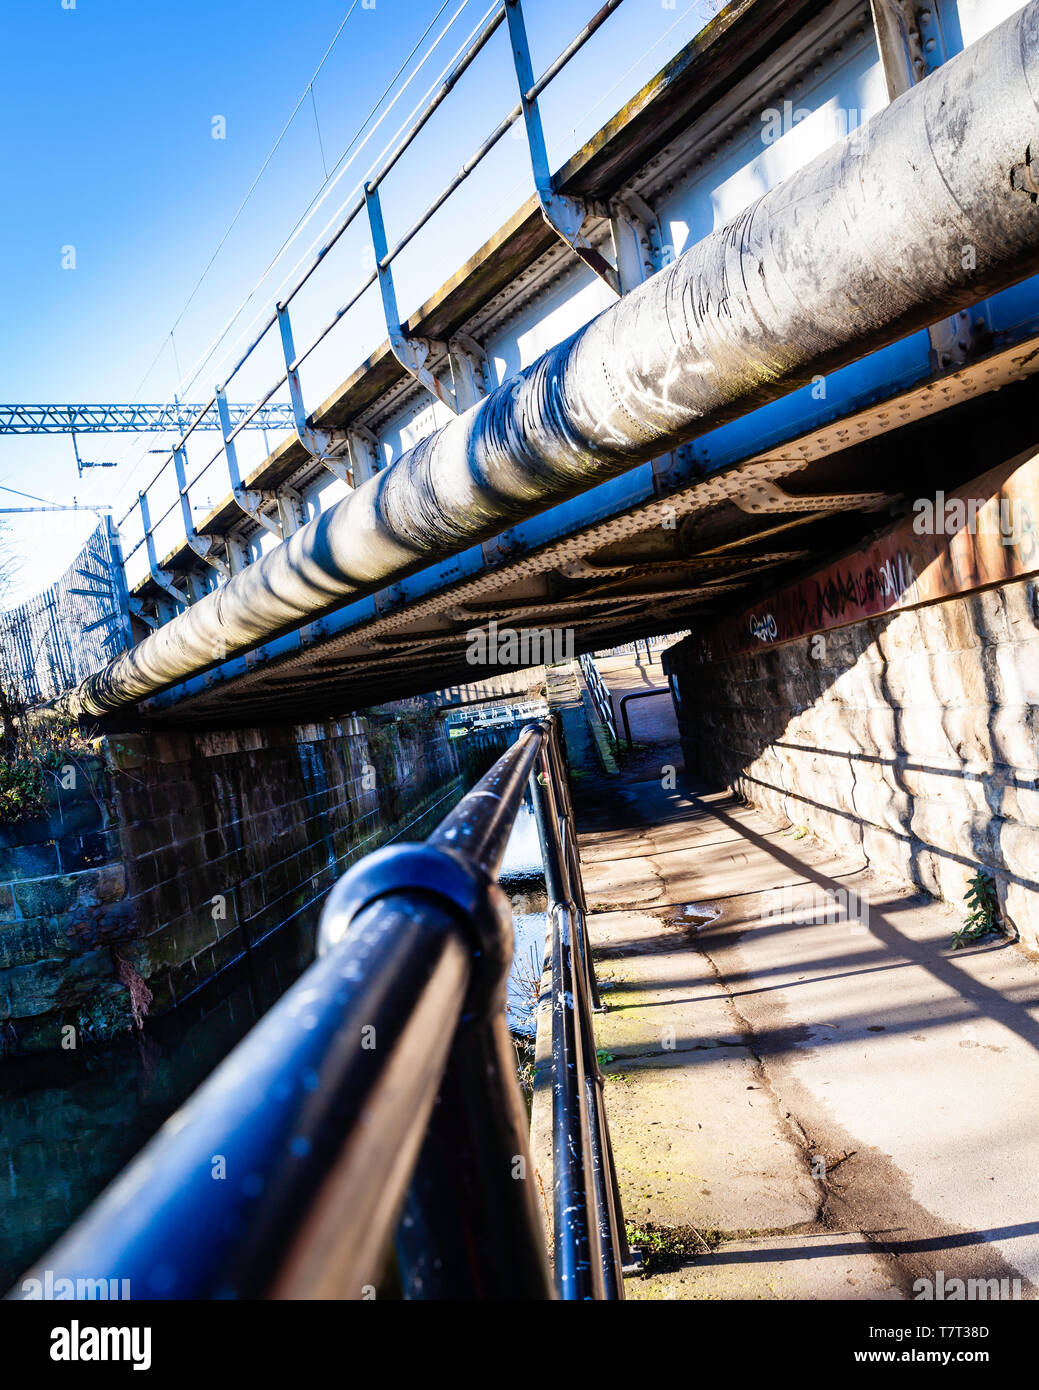 Canal towpath under a large pipe, and railway bridge. - Stock Image